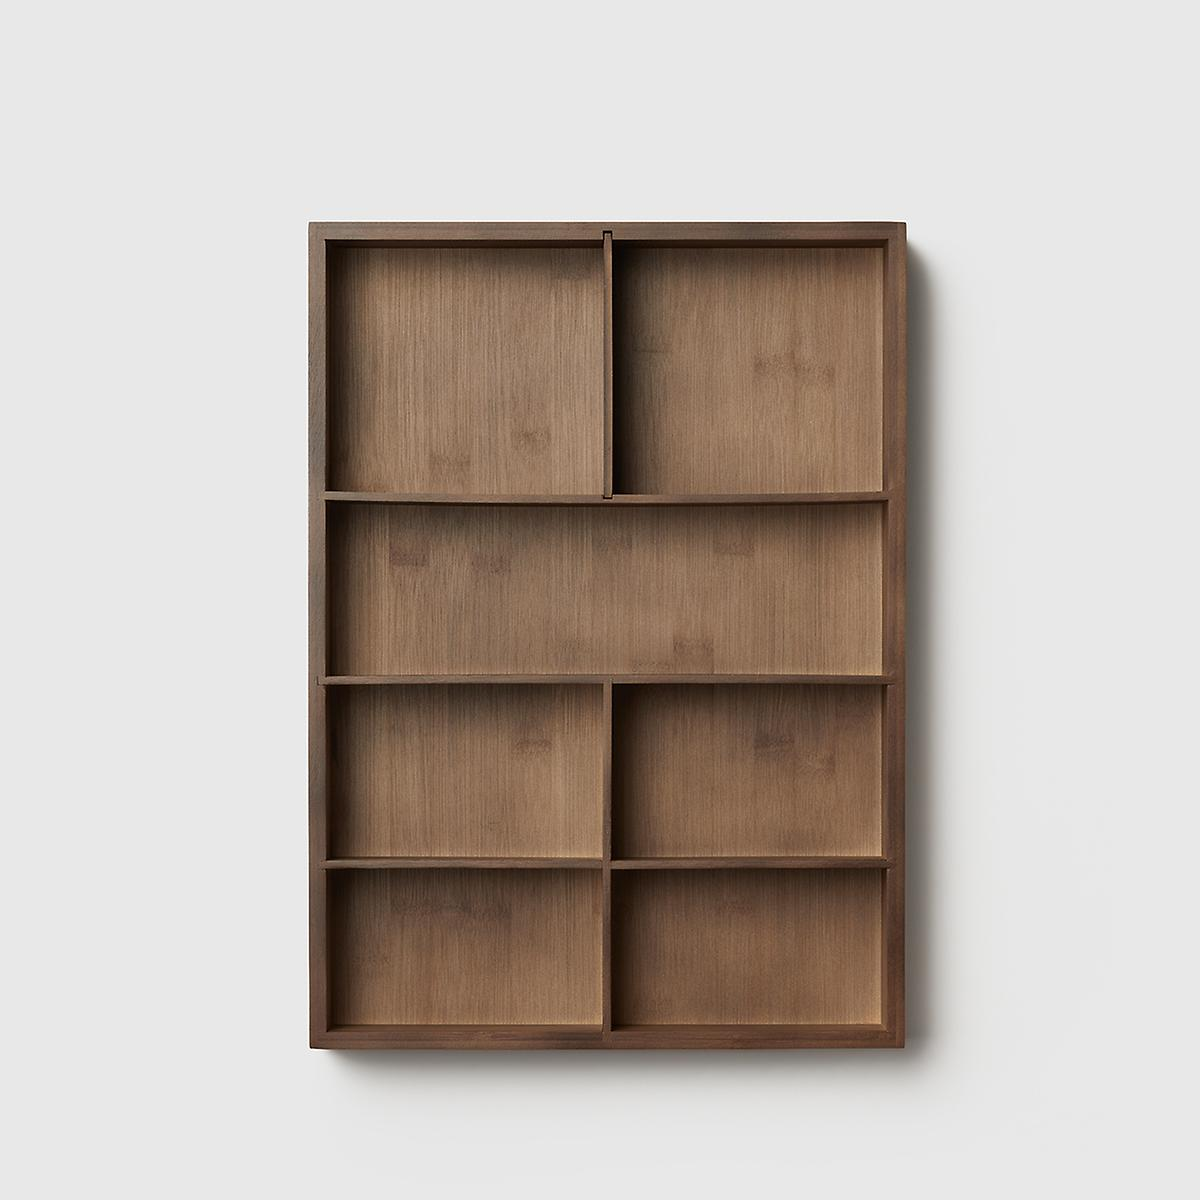 Marie Kondo 7-Section In-Drawer Organizer